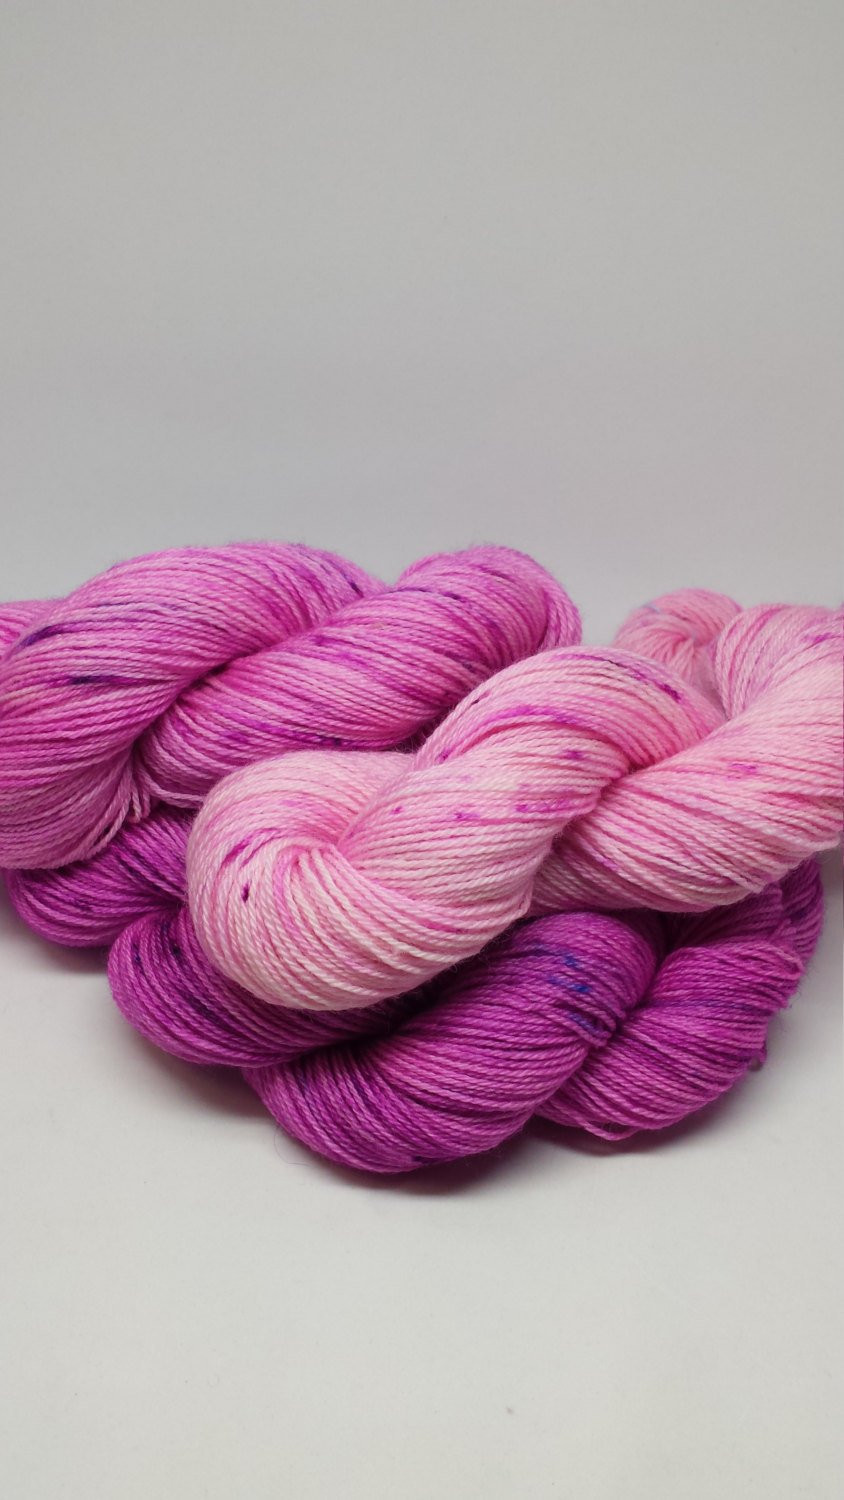 Yarn Weight 3 Lovely Hand Dyed Bfl 3 Ply Yarn sock Weight Berry by Mkuniquedesigns Of Fresh 45 Photos Yarn Weight 3